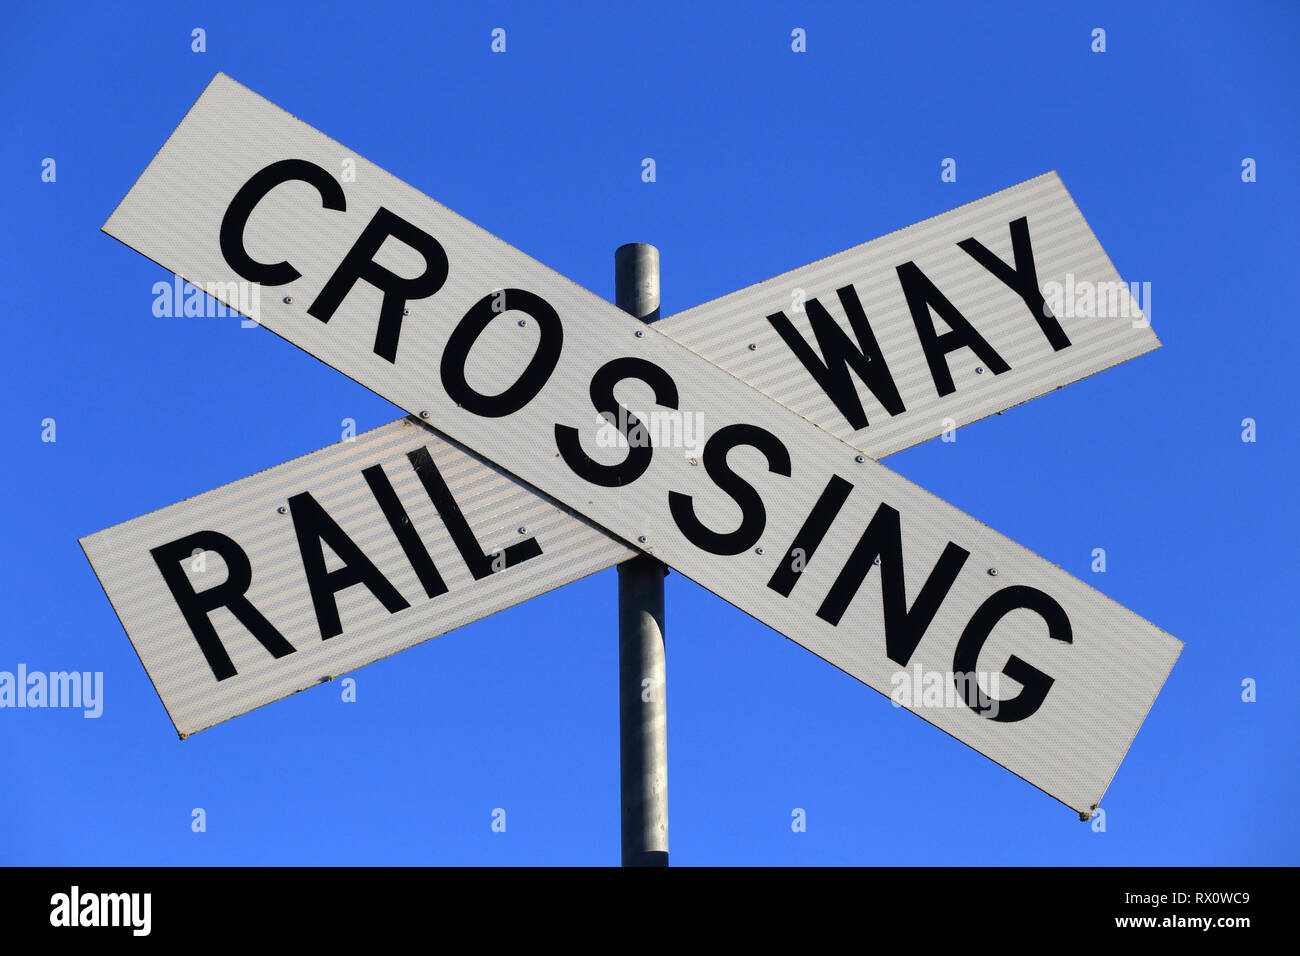 Railway Crossing Sign Stock Photos & Railway Crossing Sign